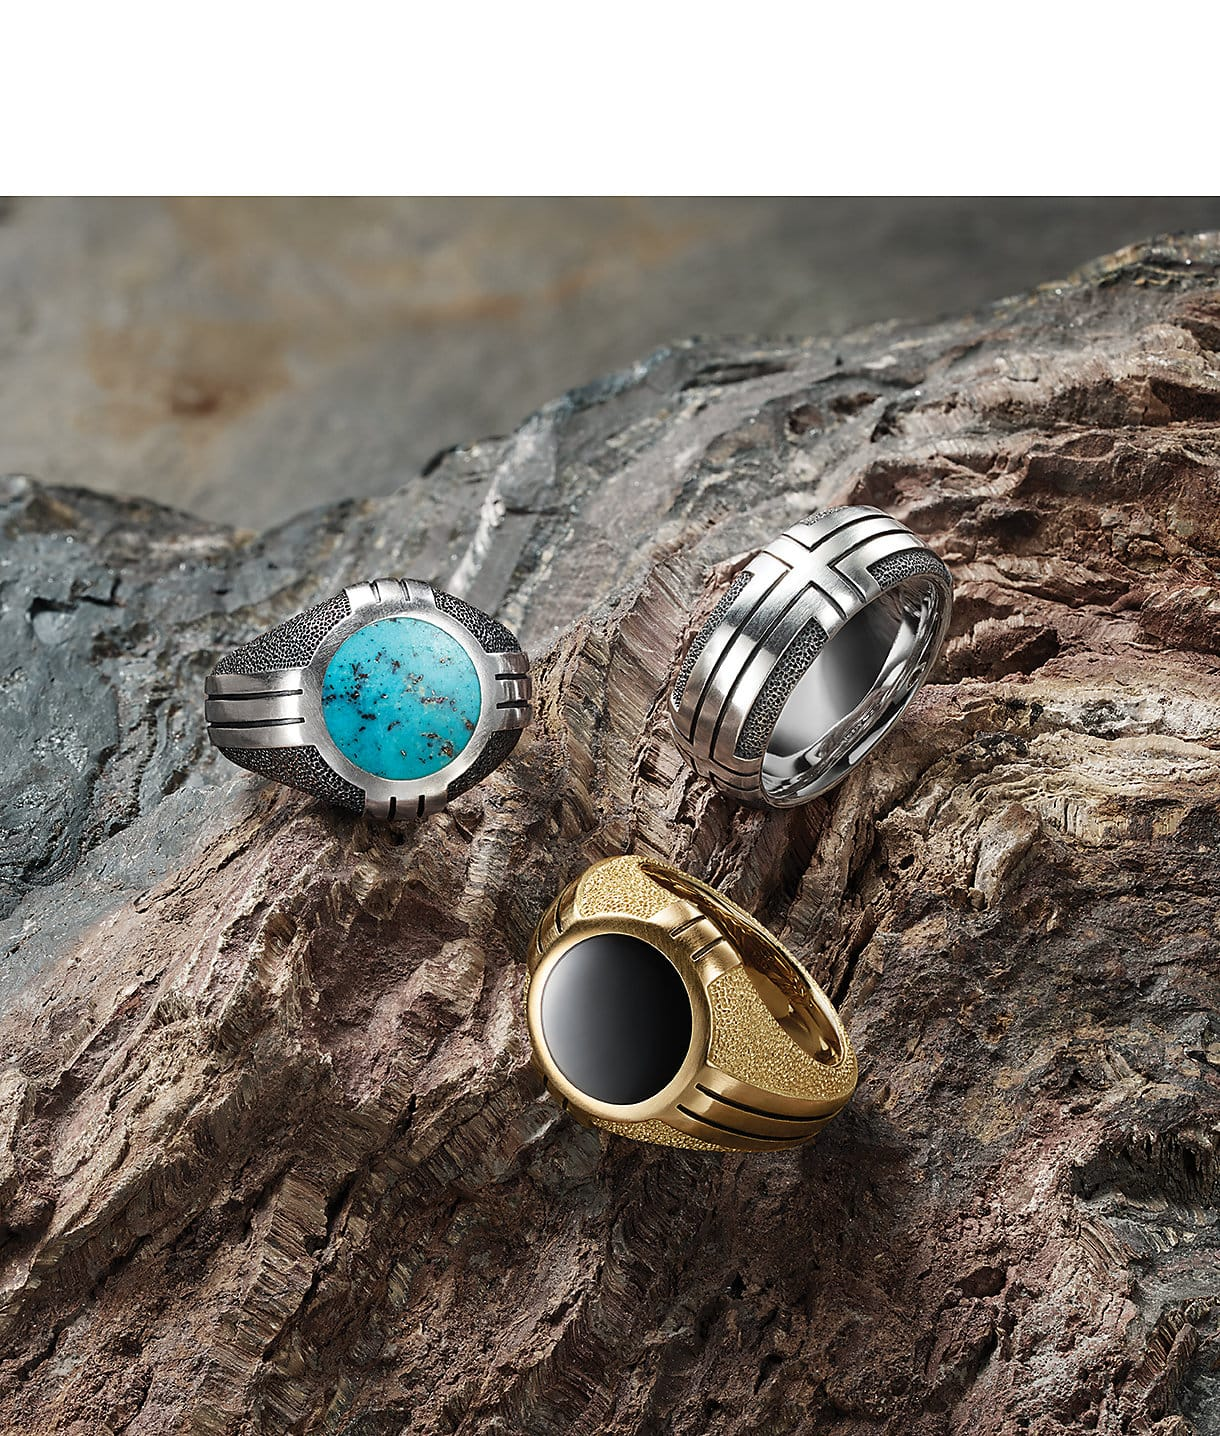 Southwest signet rings in sterling silver with turquoise, gold with black onyx and a Southwest band in sterling silver arranged on the ridges of a multicolored stone.